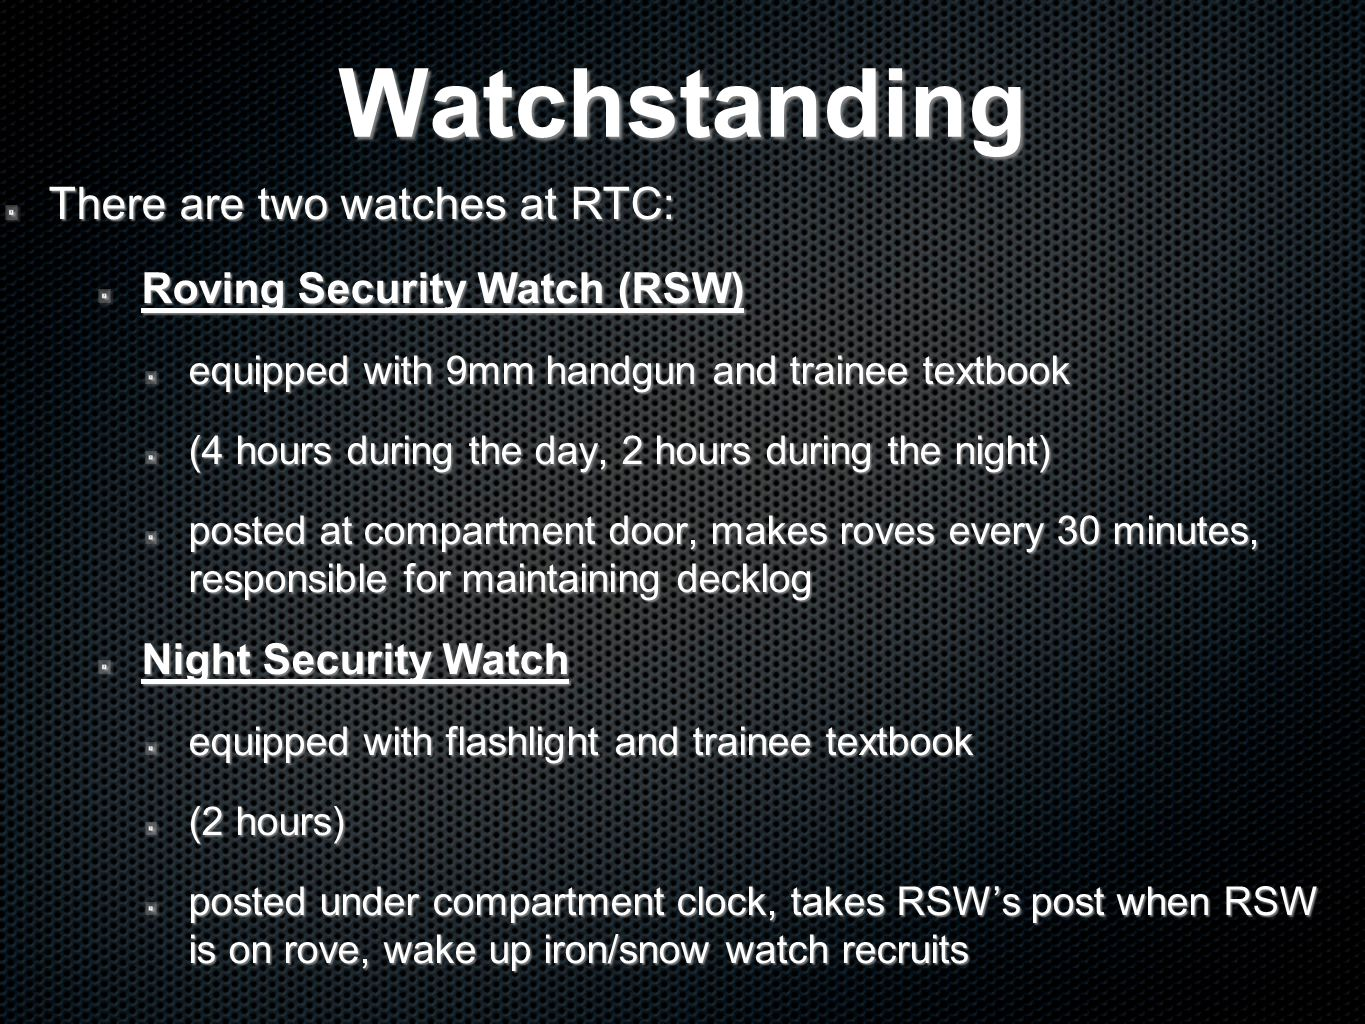 Watchstanding There are two watches at RTC: